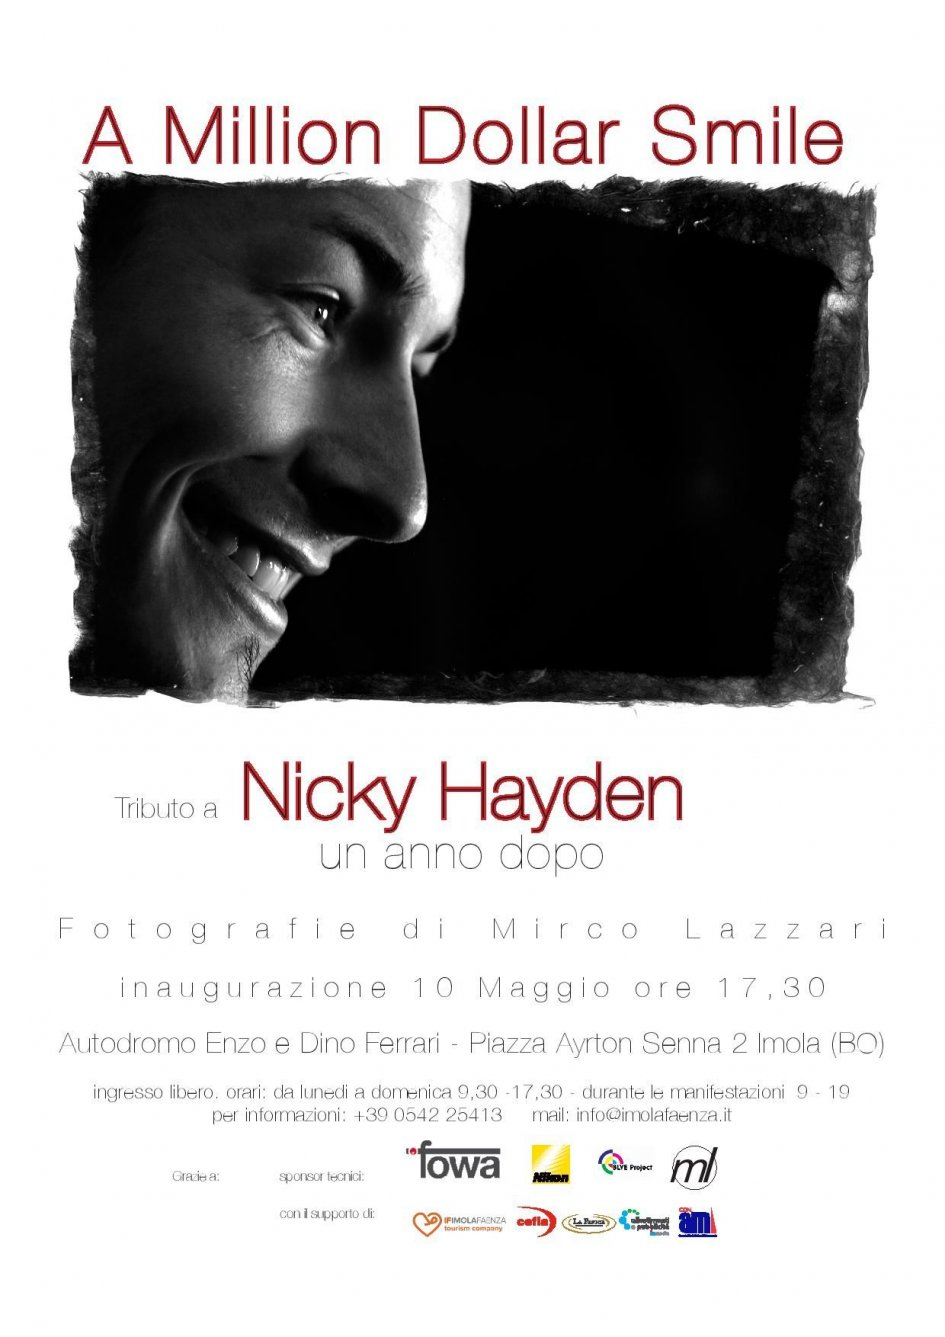 SBK: Imola: an exhibition in memory of Nicky Hayden